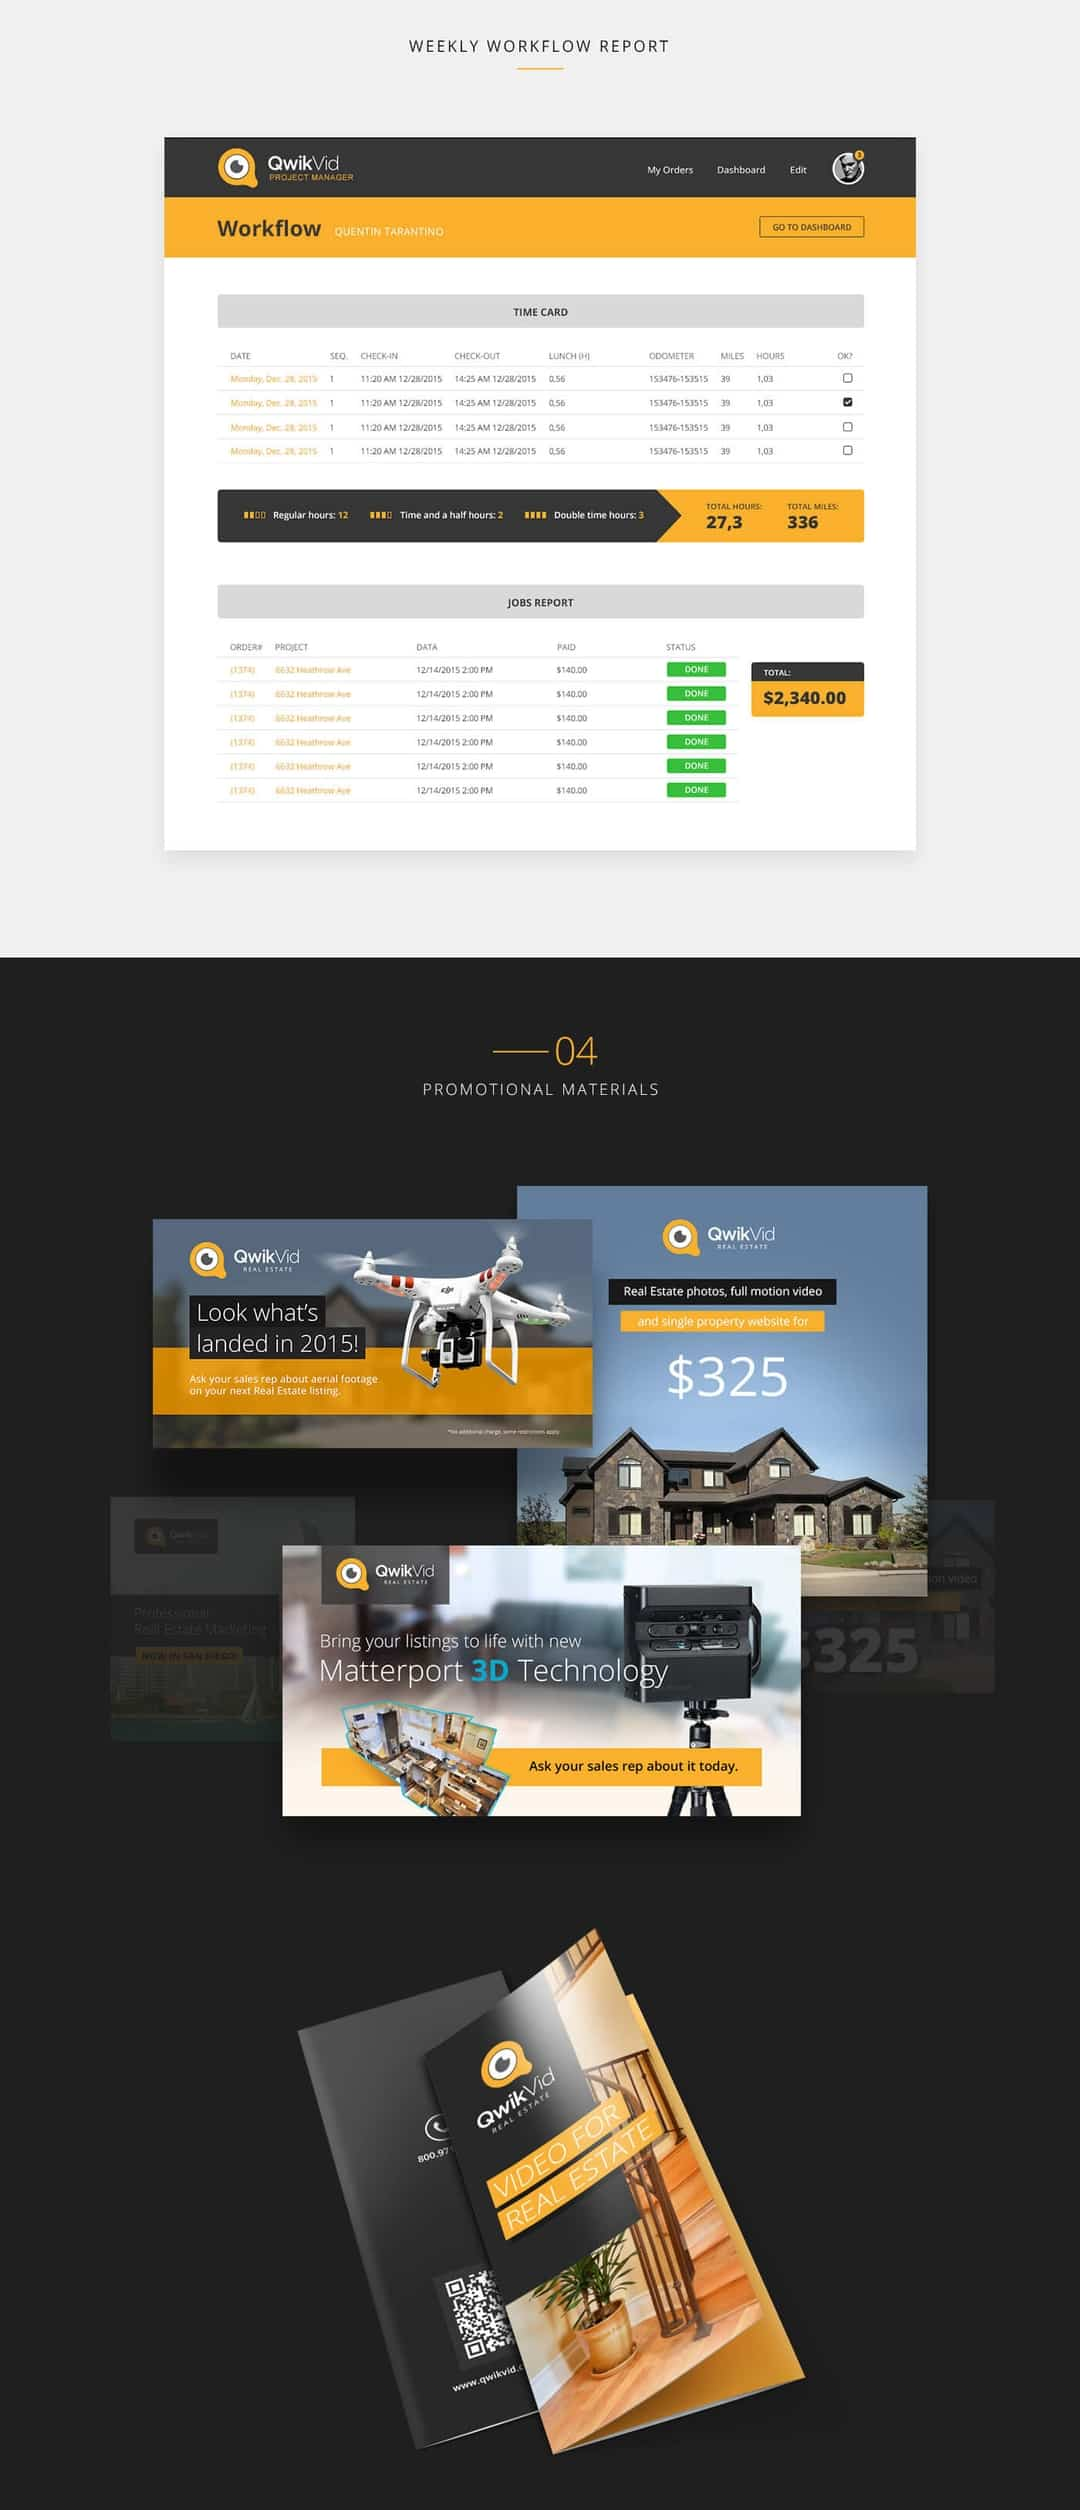 Qwikvid branding design and website by Finsweet